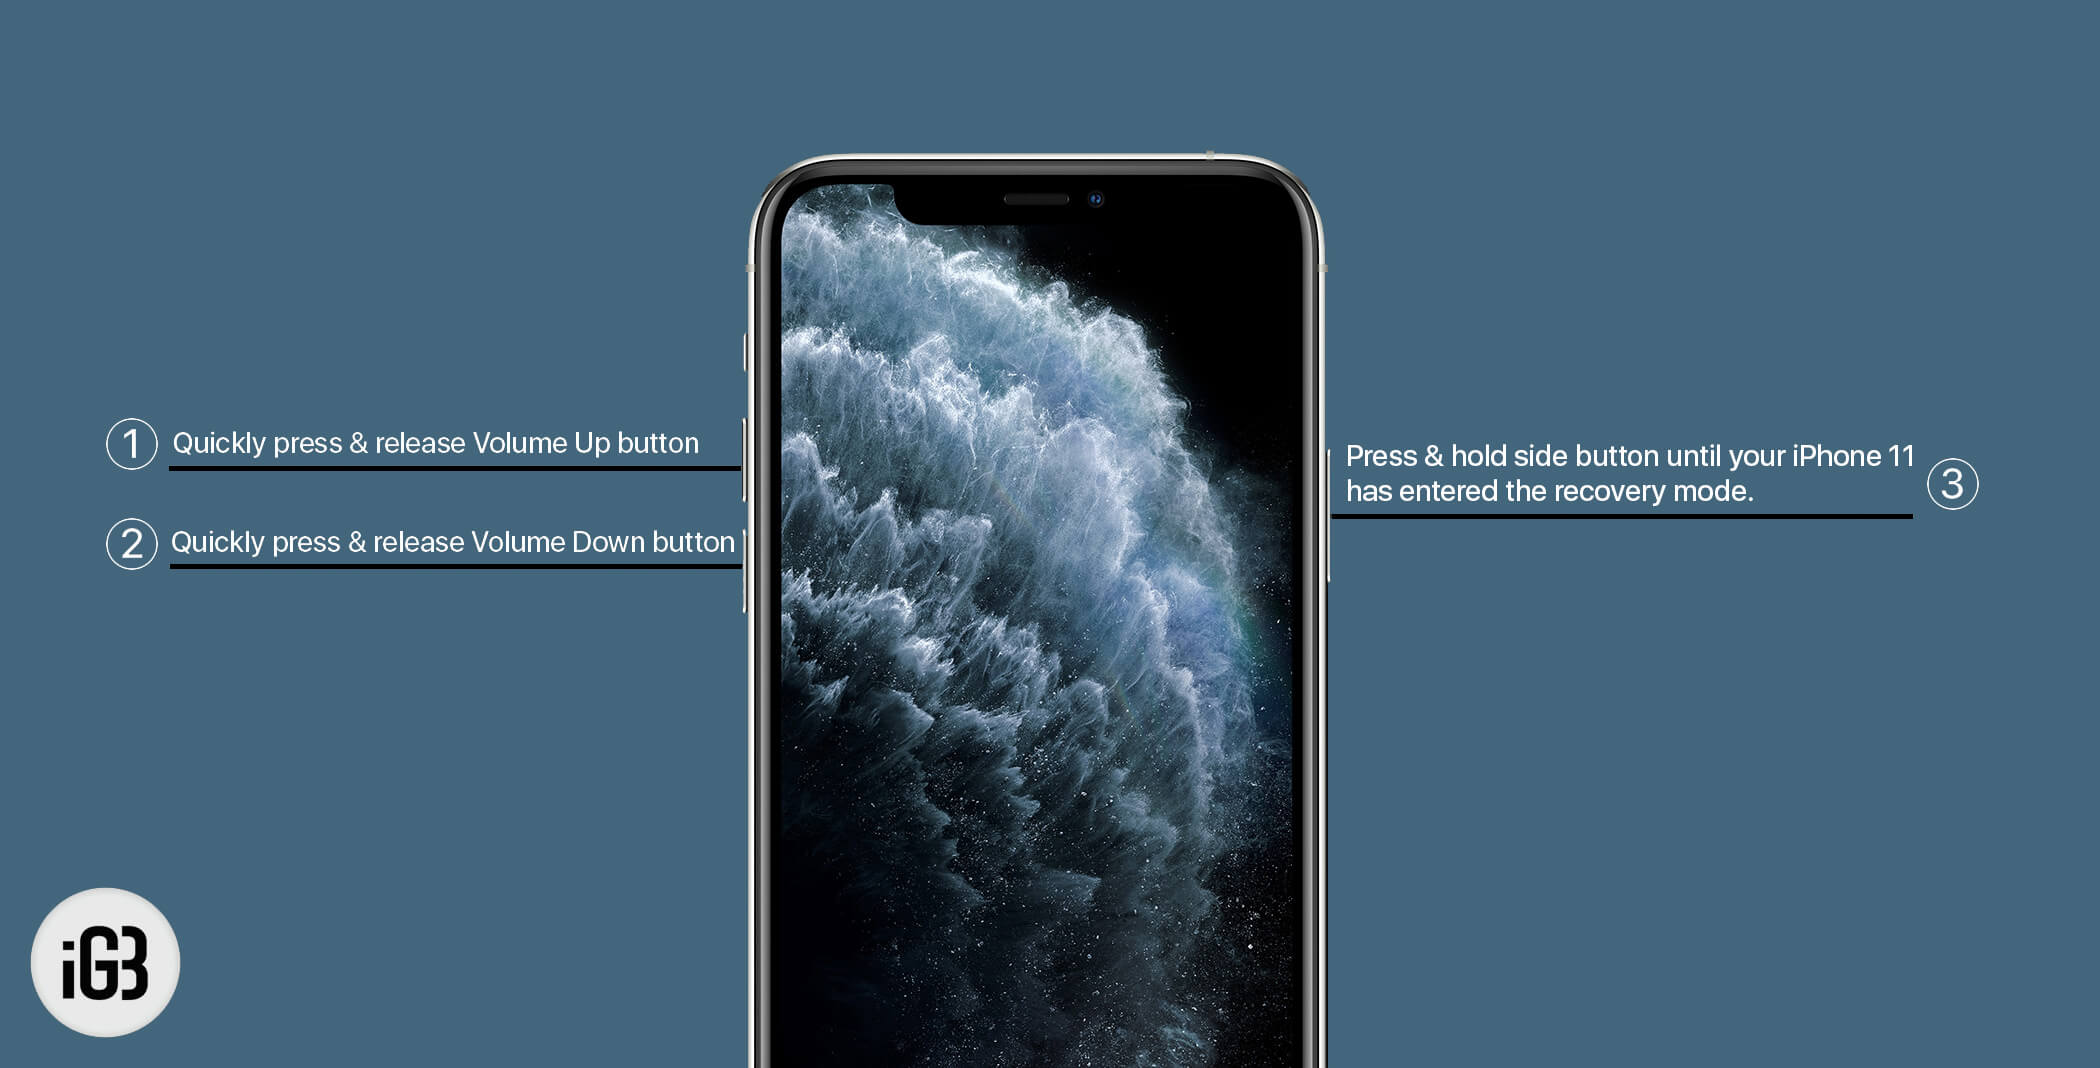 Enter Recovery Mode on iPhone 11 Pro Max, 11 Pro, and iPhone 11